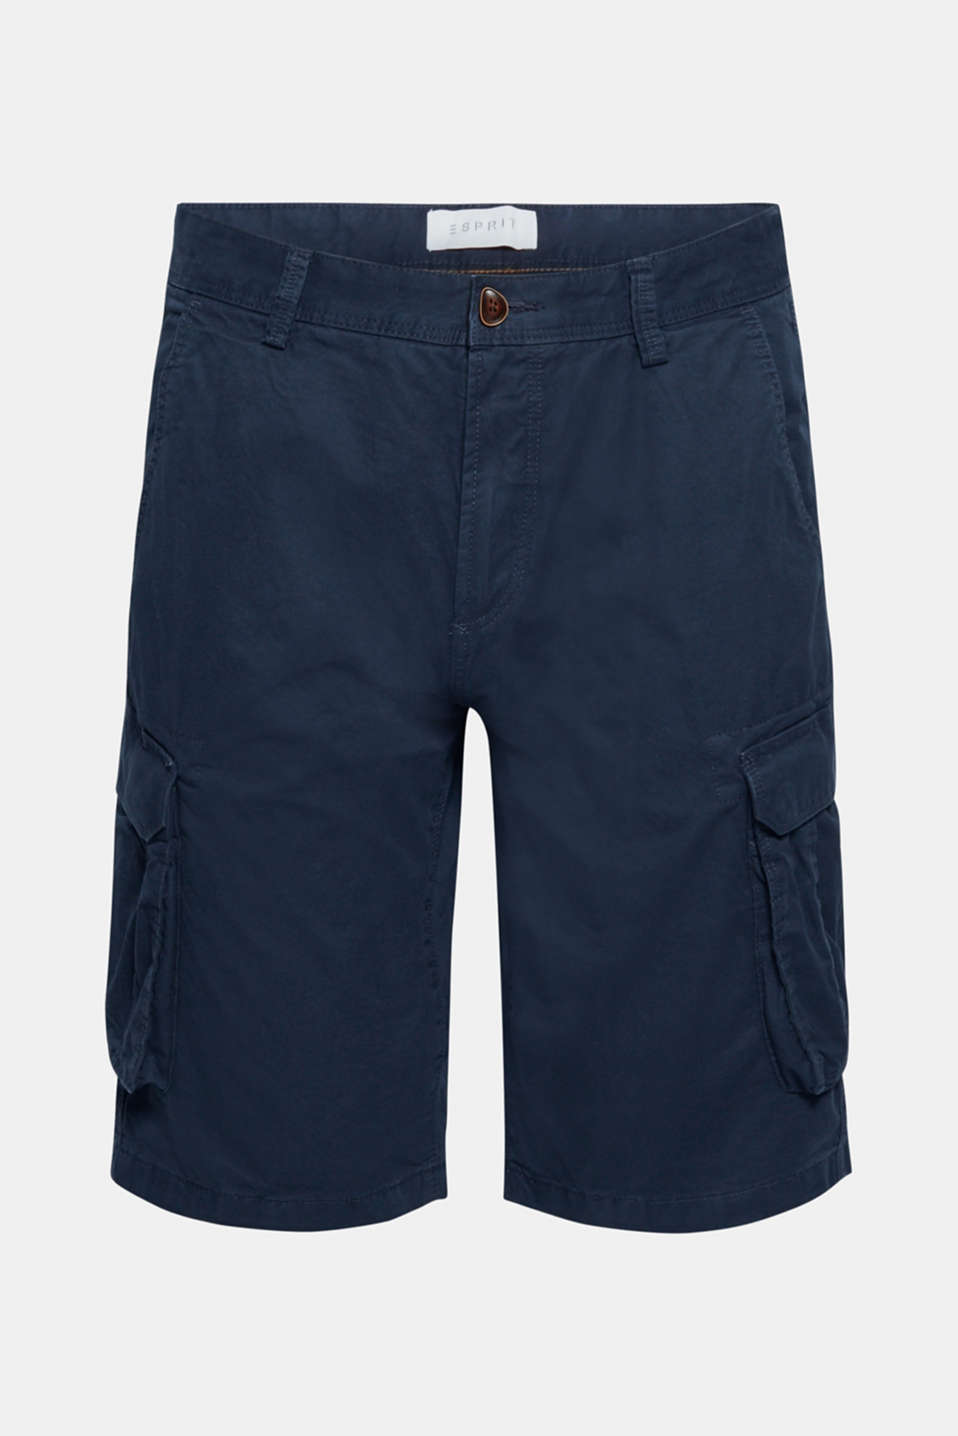 Shorts woven Relaxed fit, NAVY, detail image number 6